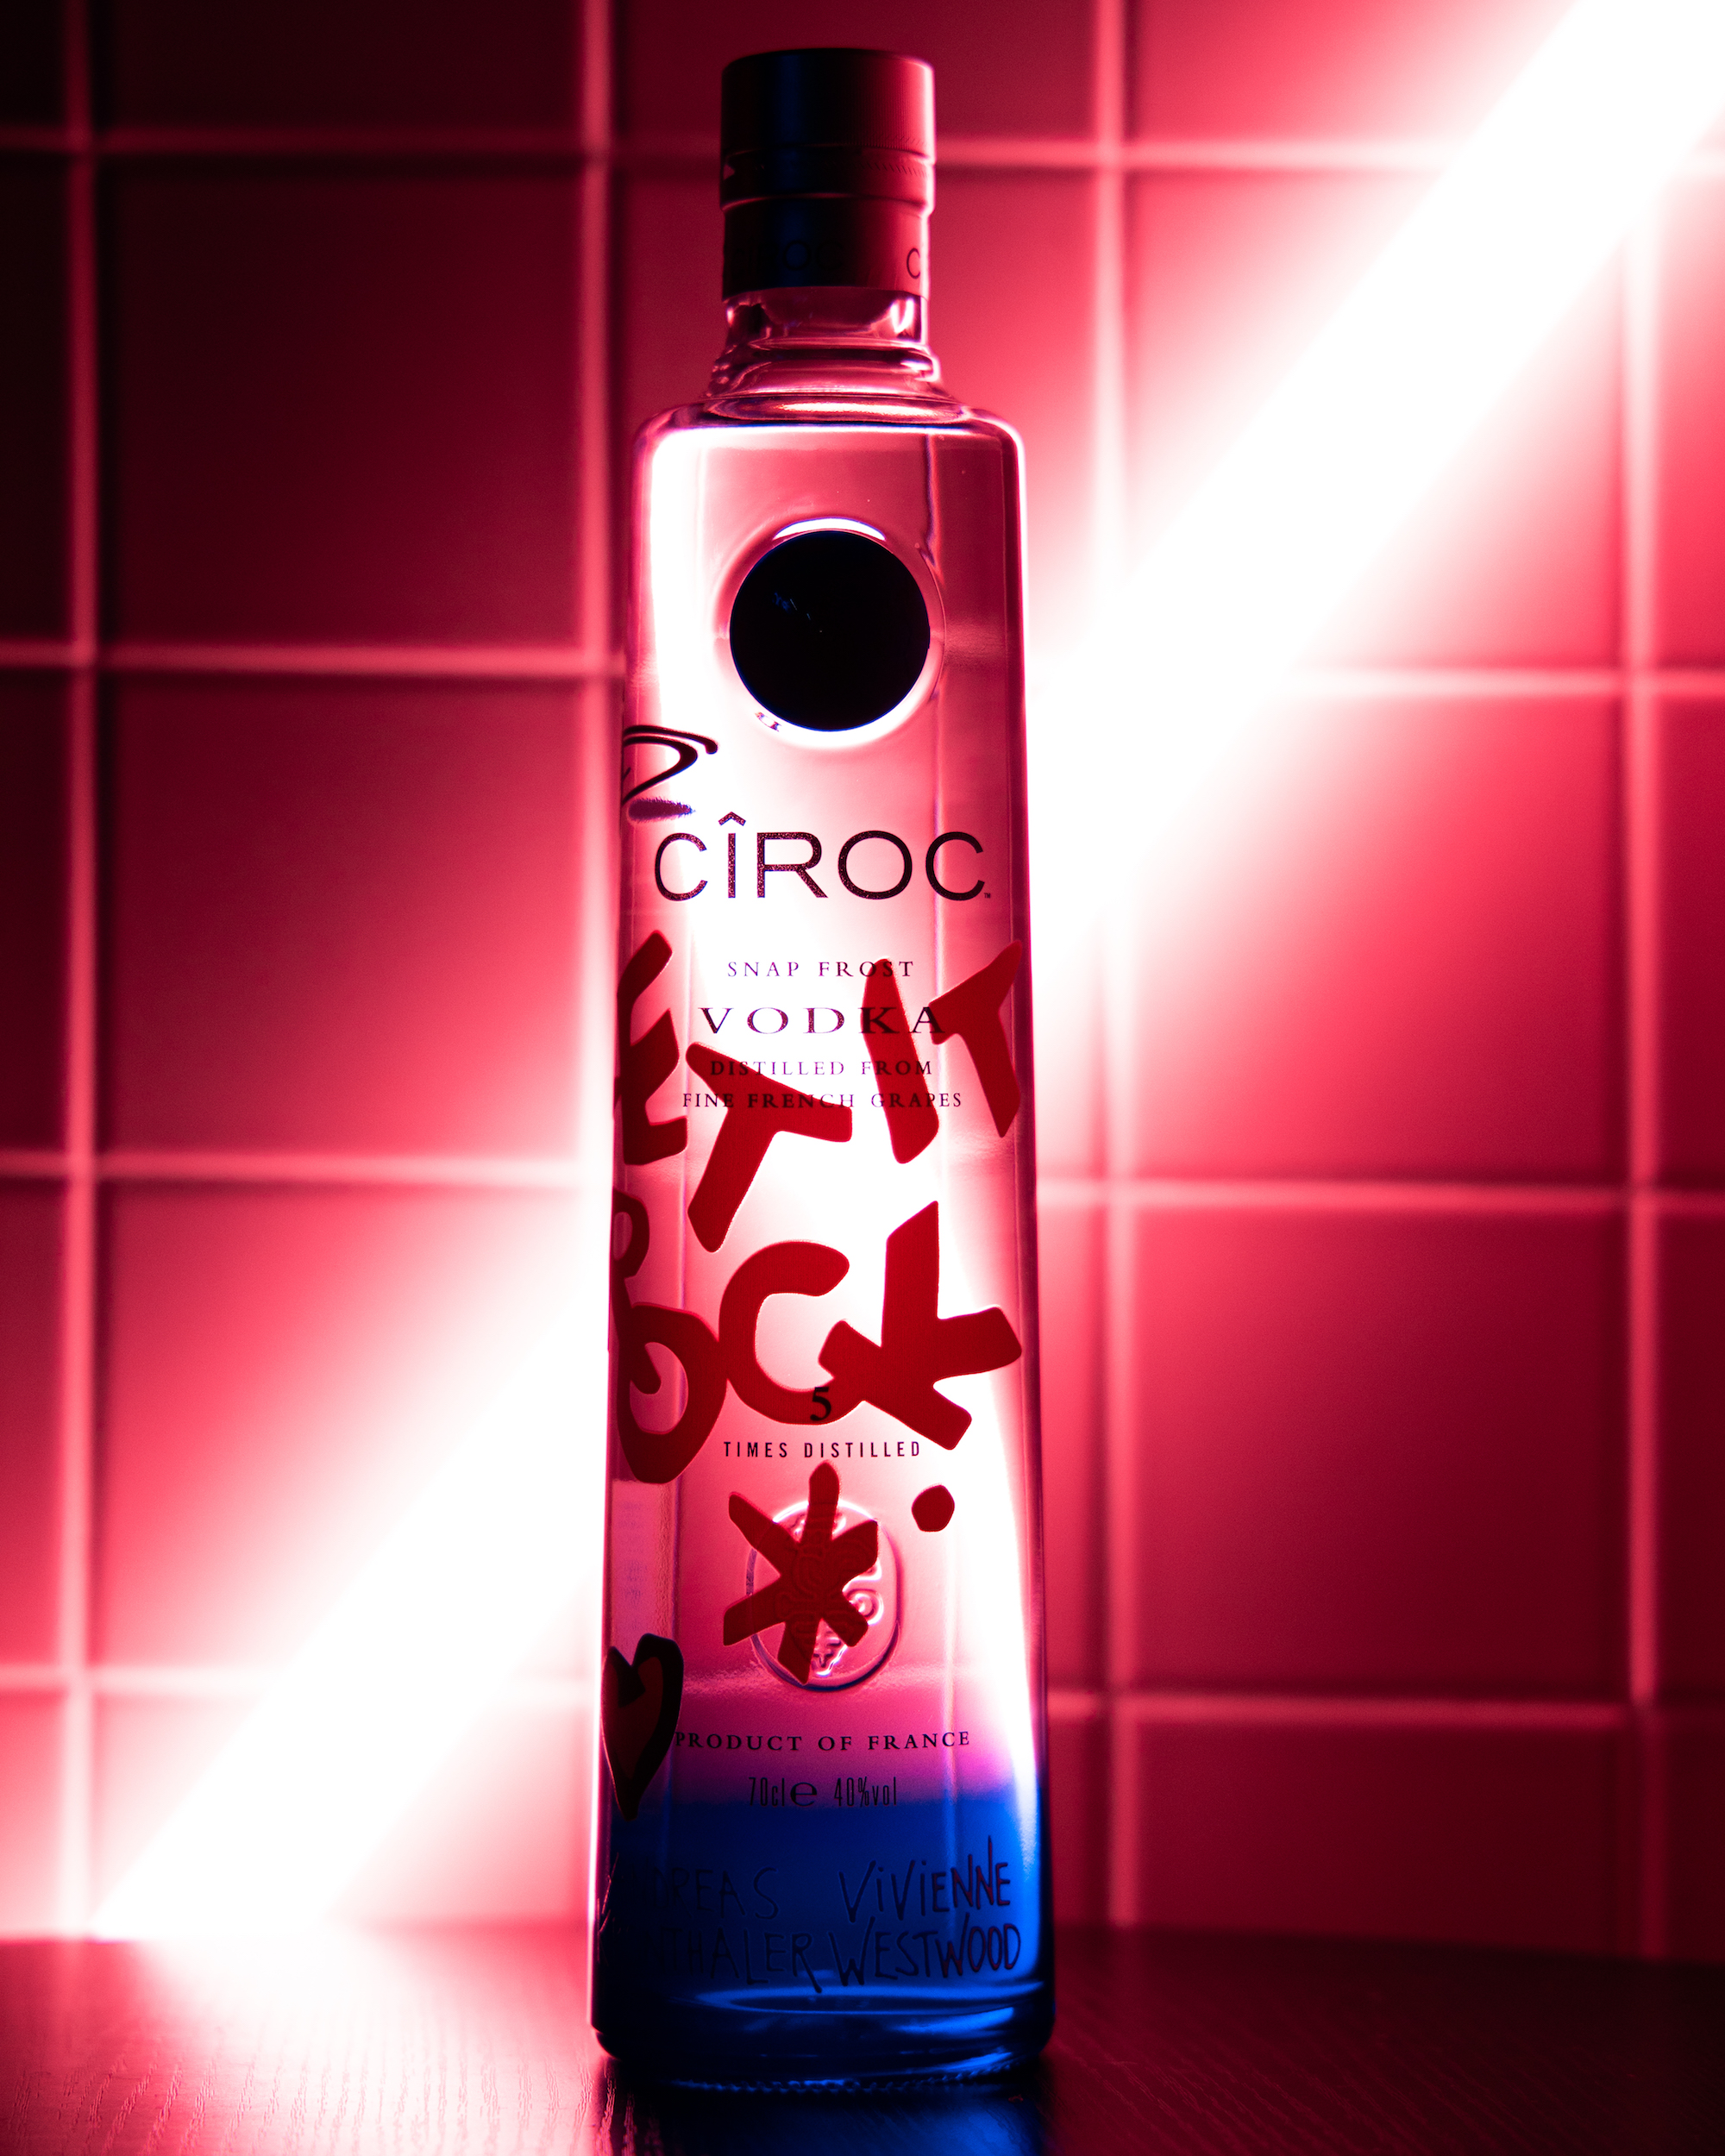 Ciroc x Vivienne Westwood bottle collaboration